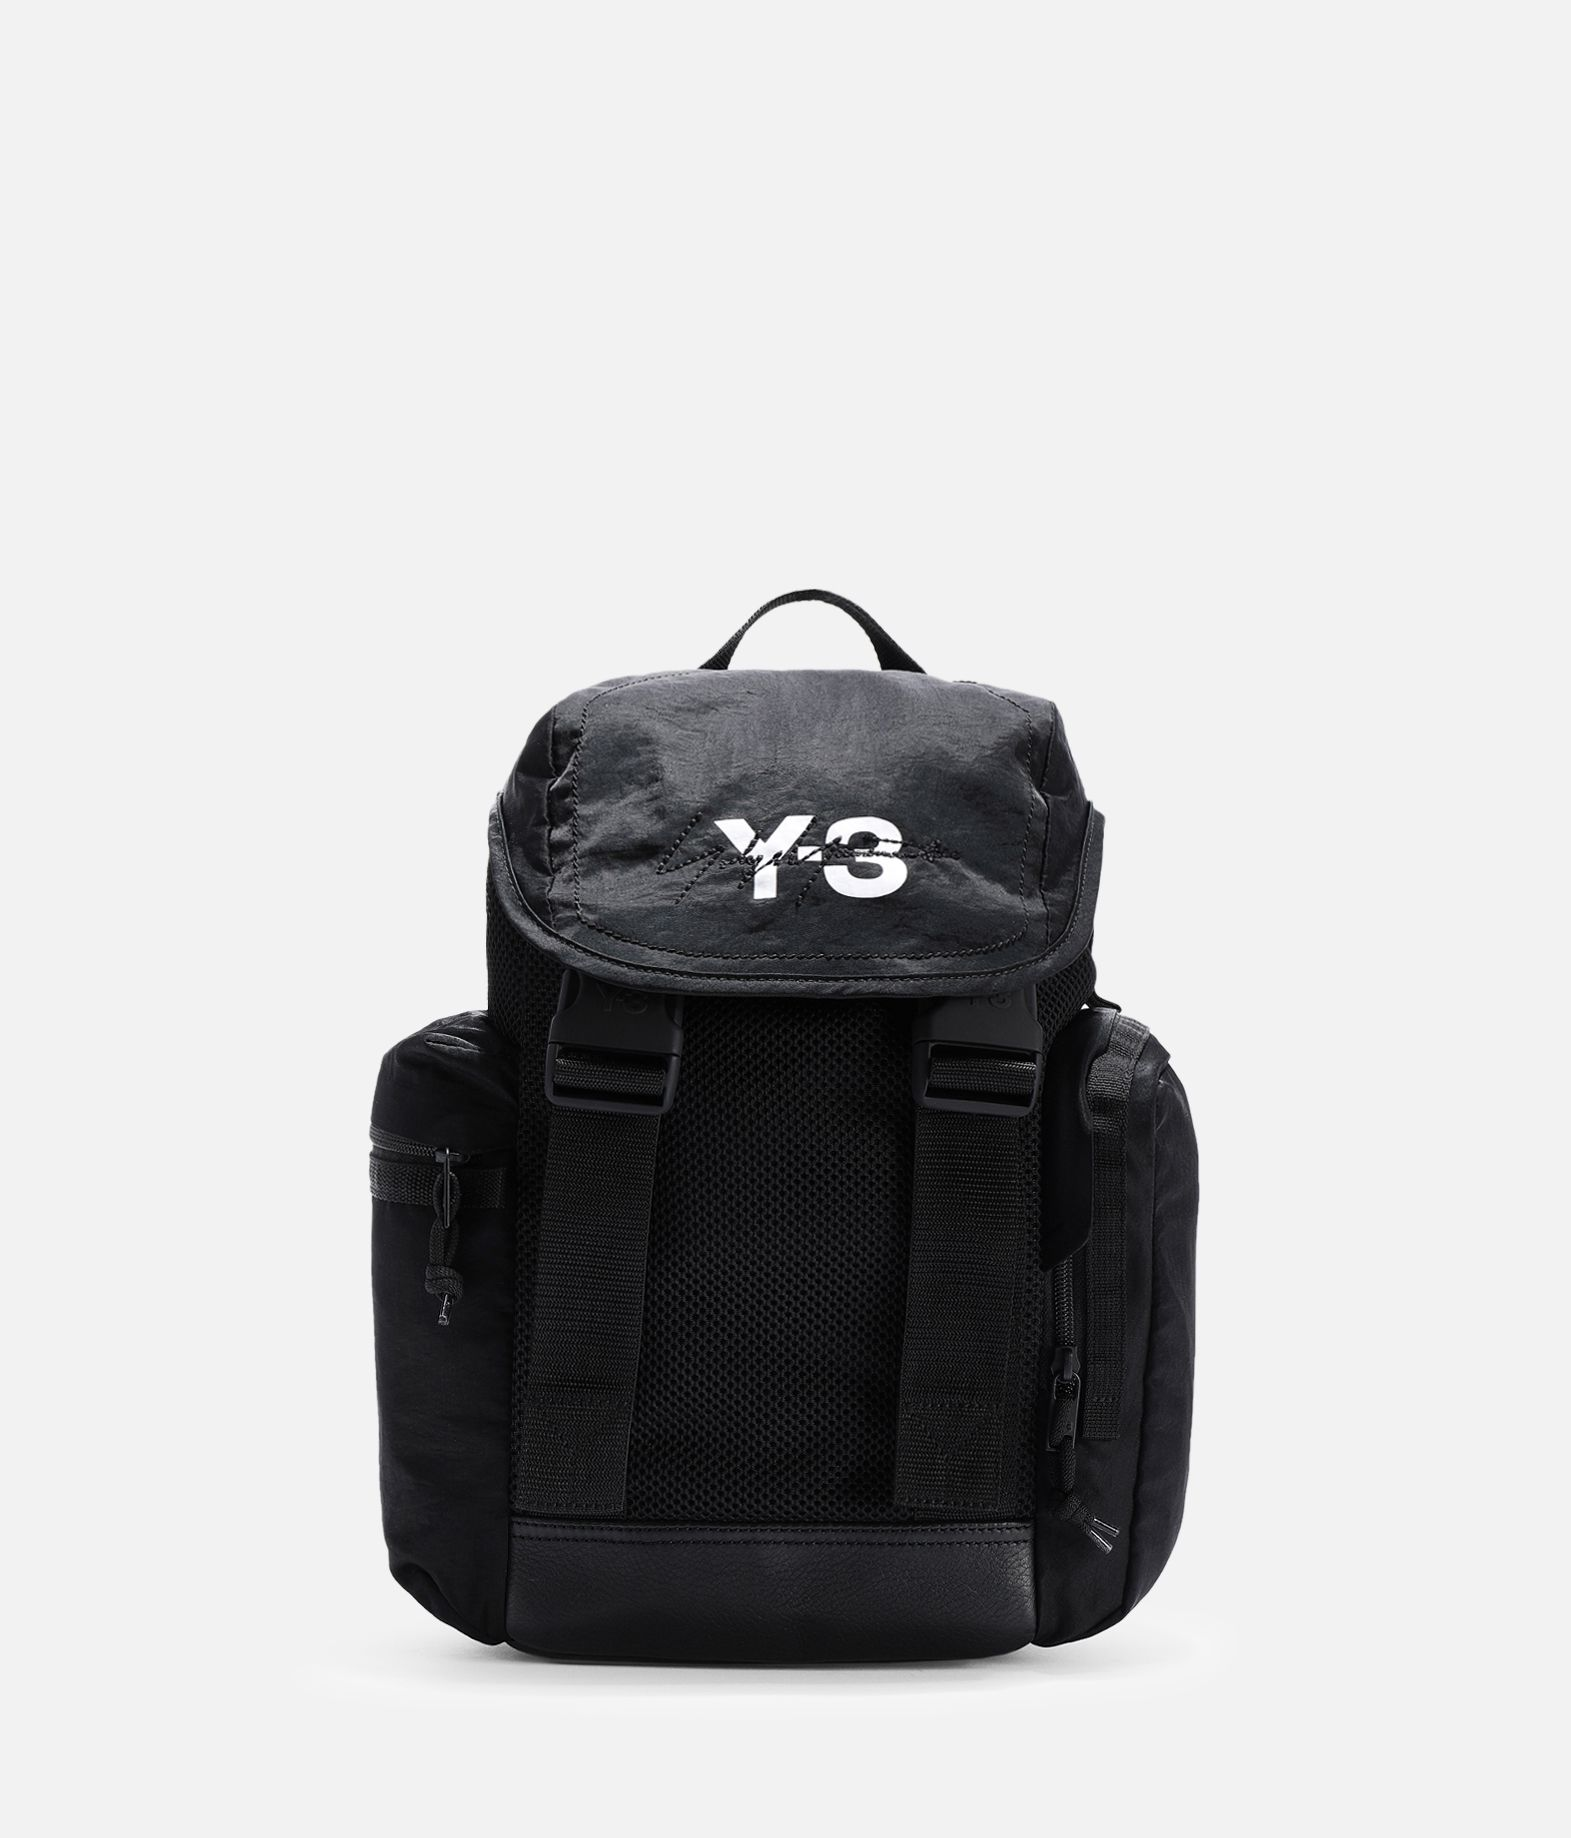 0bf5ddd3aed6 ... Y-3 Y-3 XS Mobility Bag Backpack E f ...